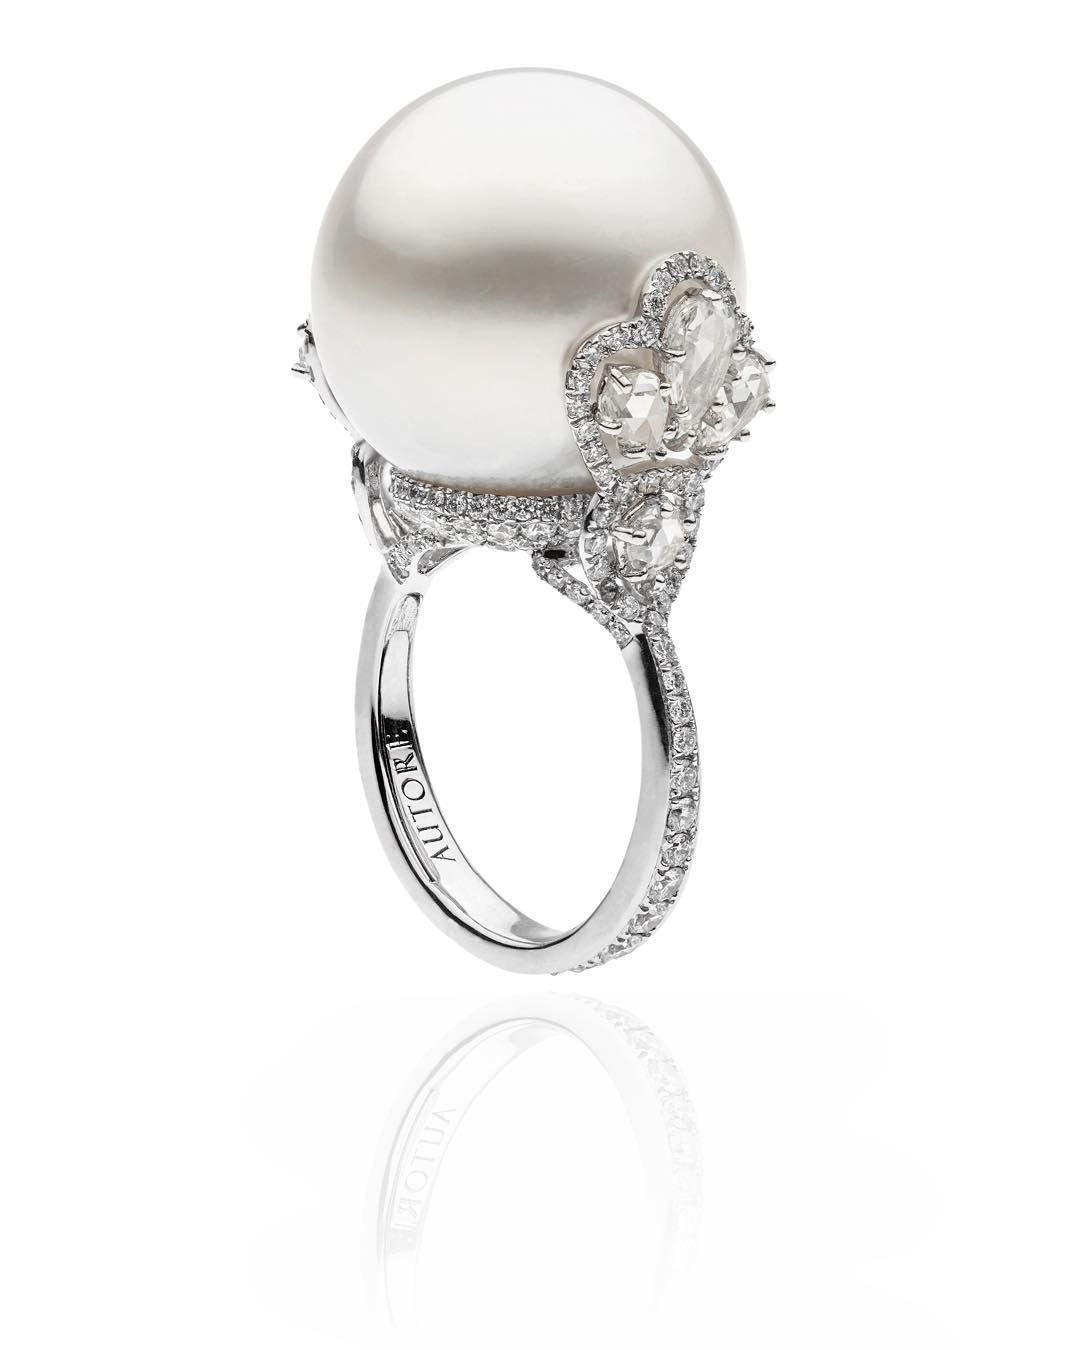 Rosamaria G Frangini  High Pearl Jewellery  Tjs  Autore Ring  18k White  Gold